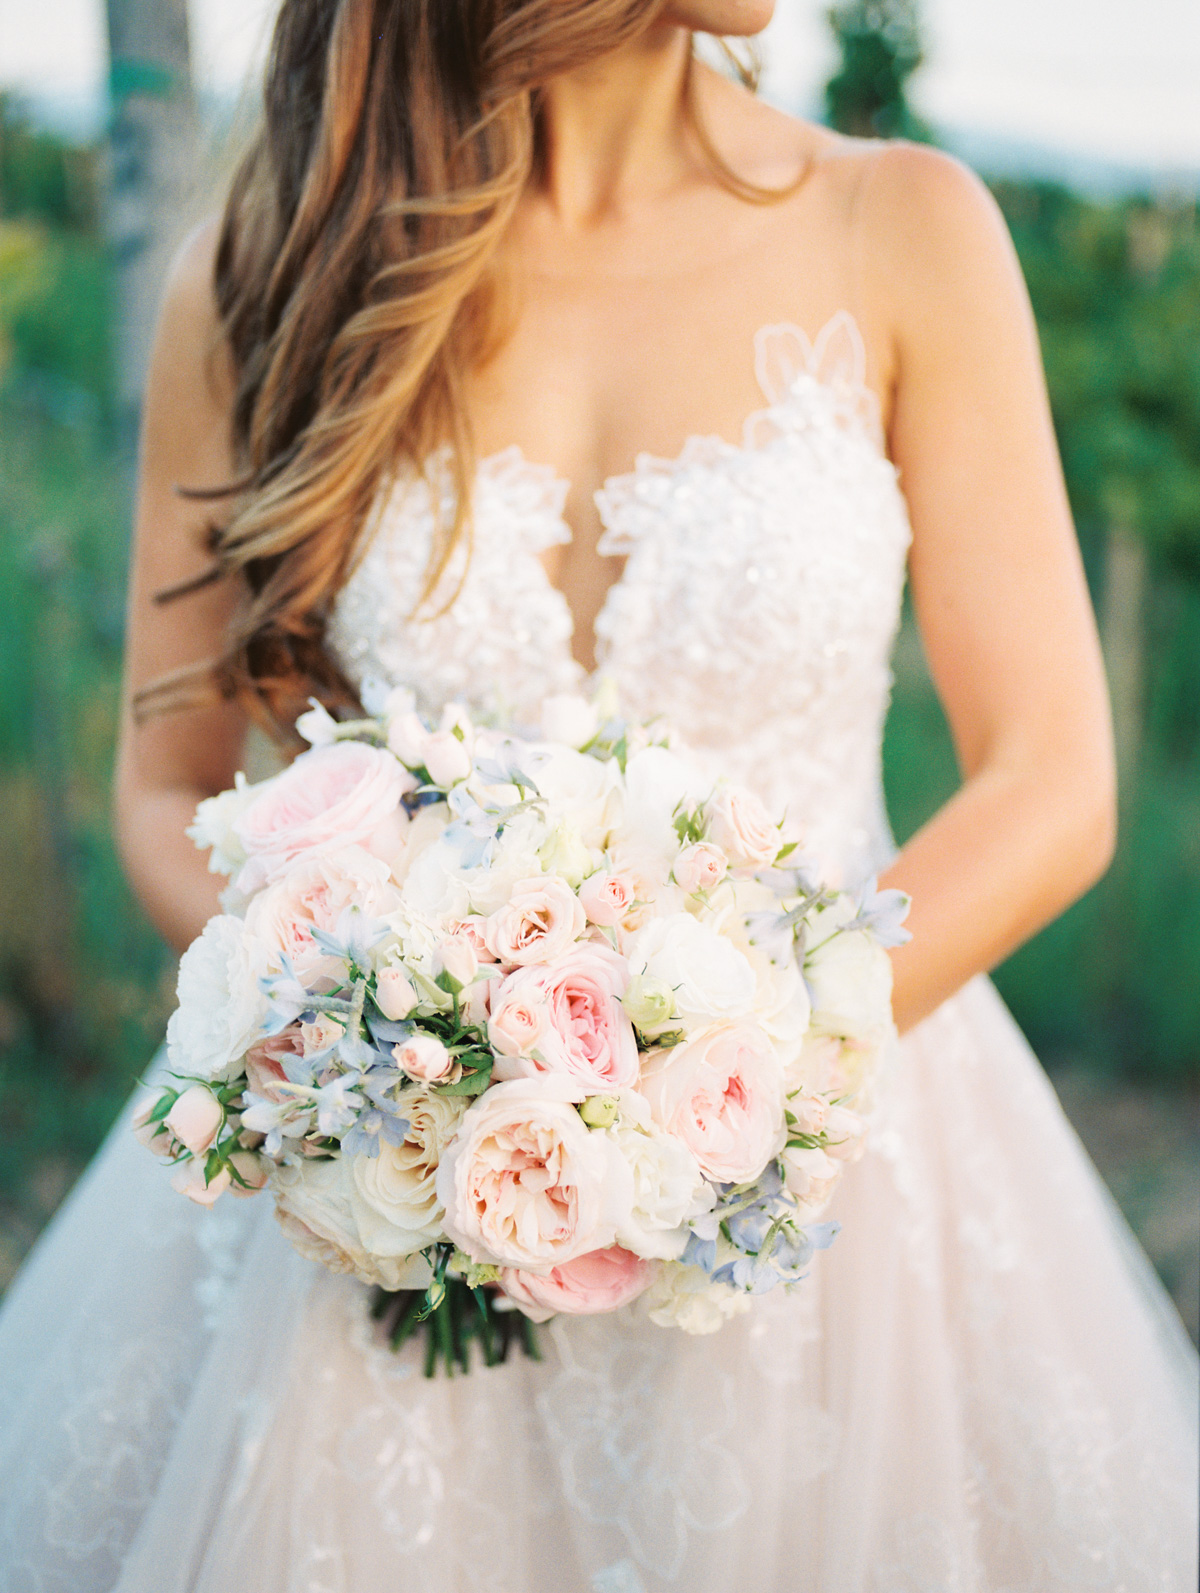 Gorgeous bridal bouquet by Soiree Design & Events  Harrison & Jocelyne's gorgeous Temecula wedding day at Wiens Family Cellars captured by Temecula wedding photographers Betsy & John